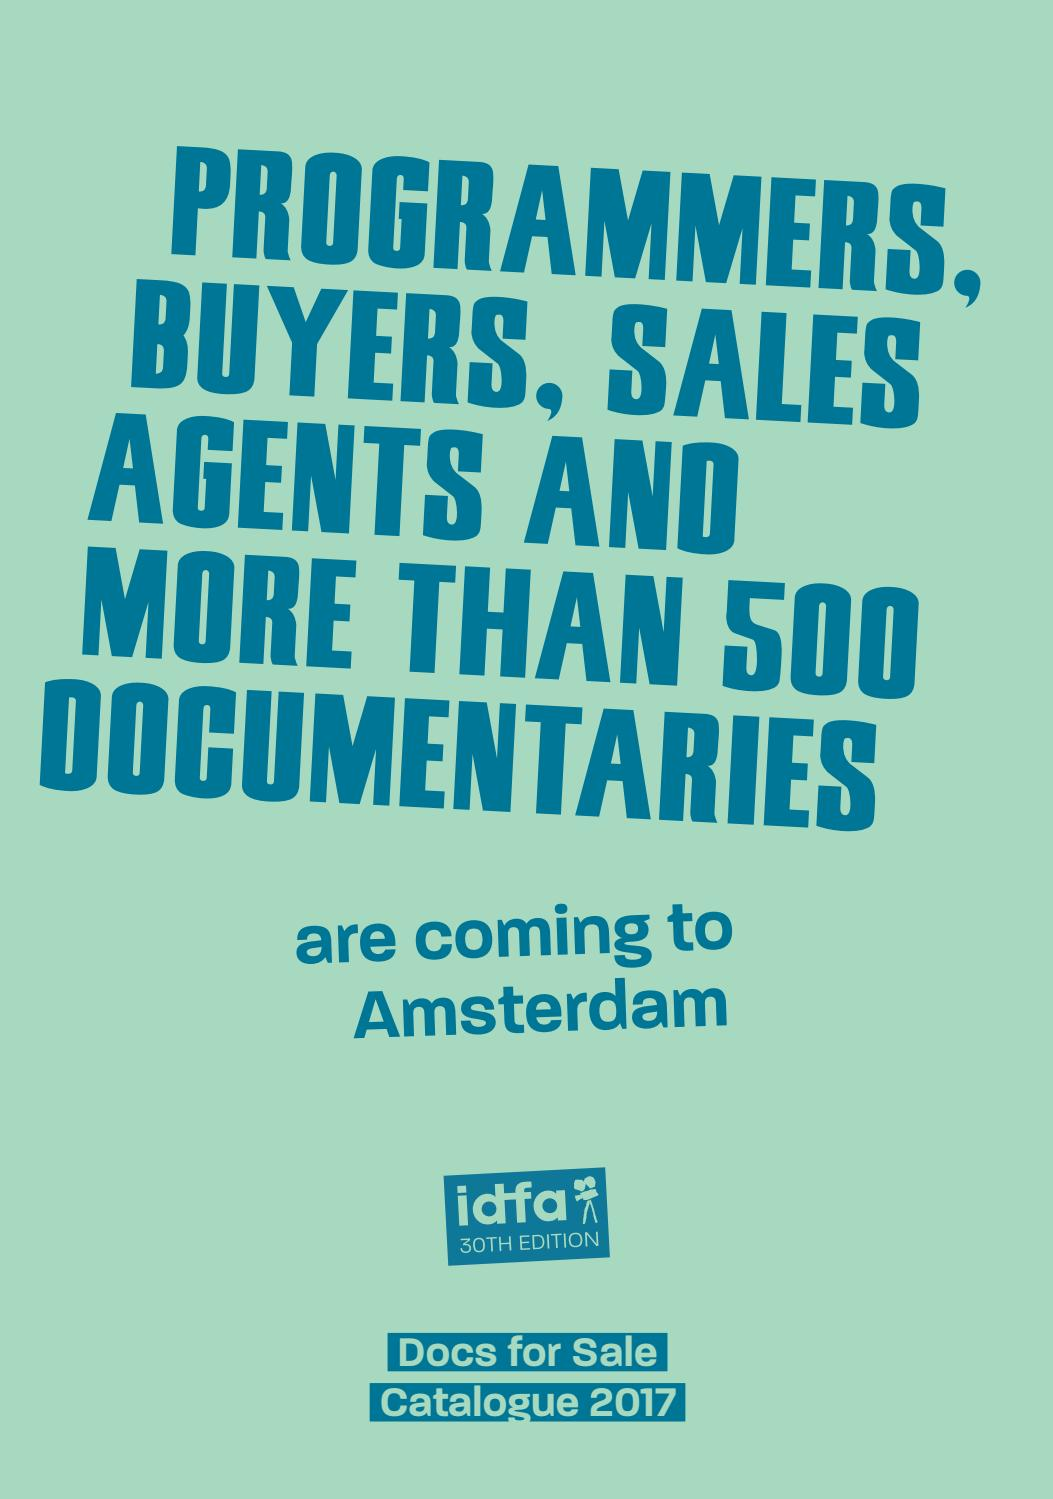 Docs for Sale 2017 Catalogue by IDFA International